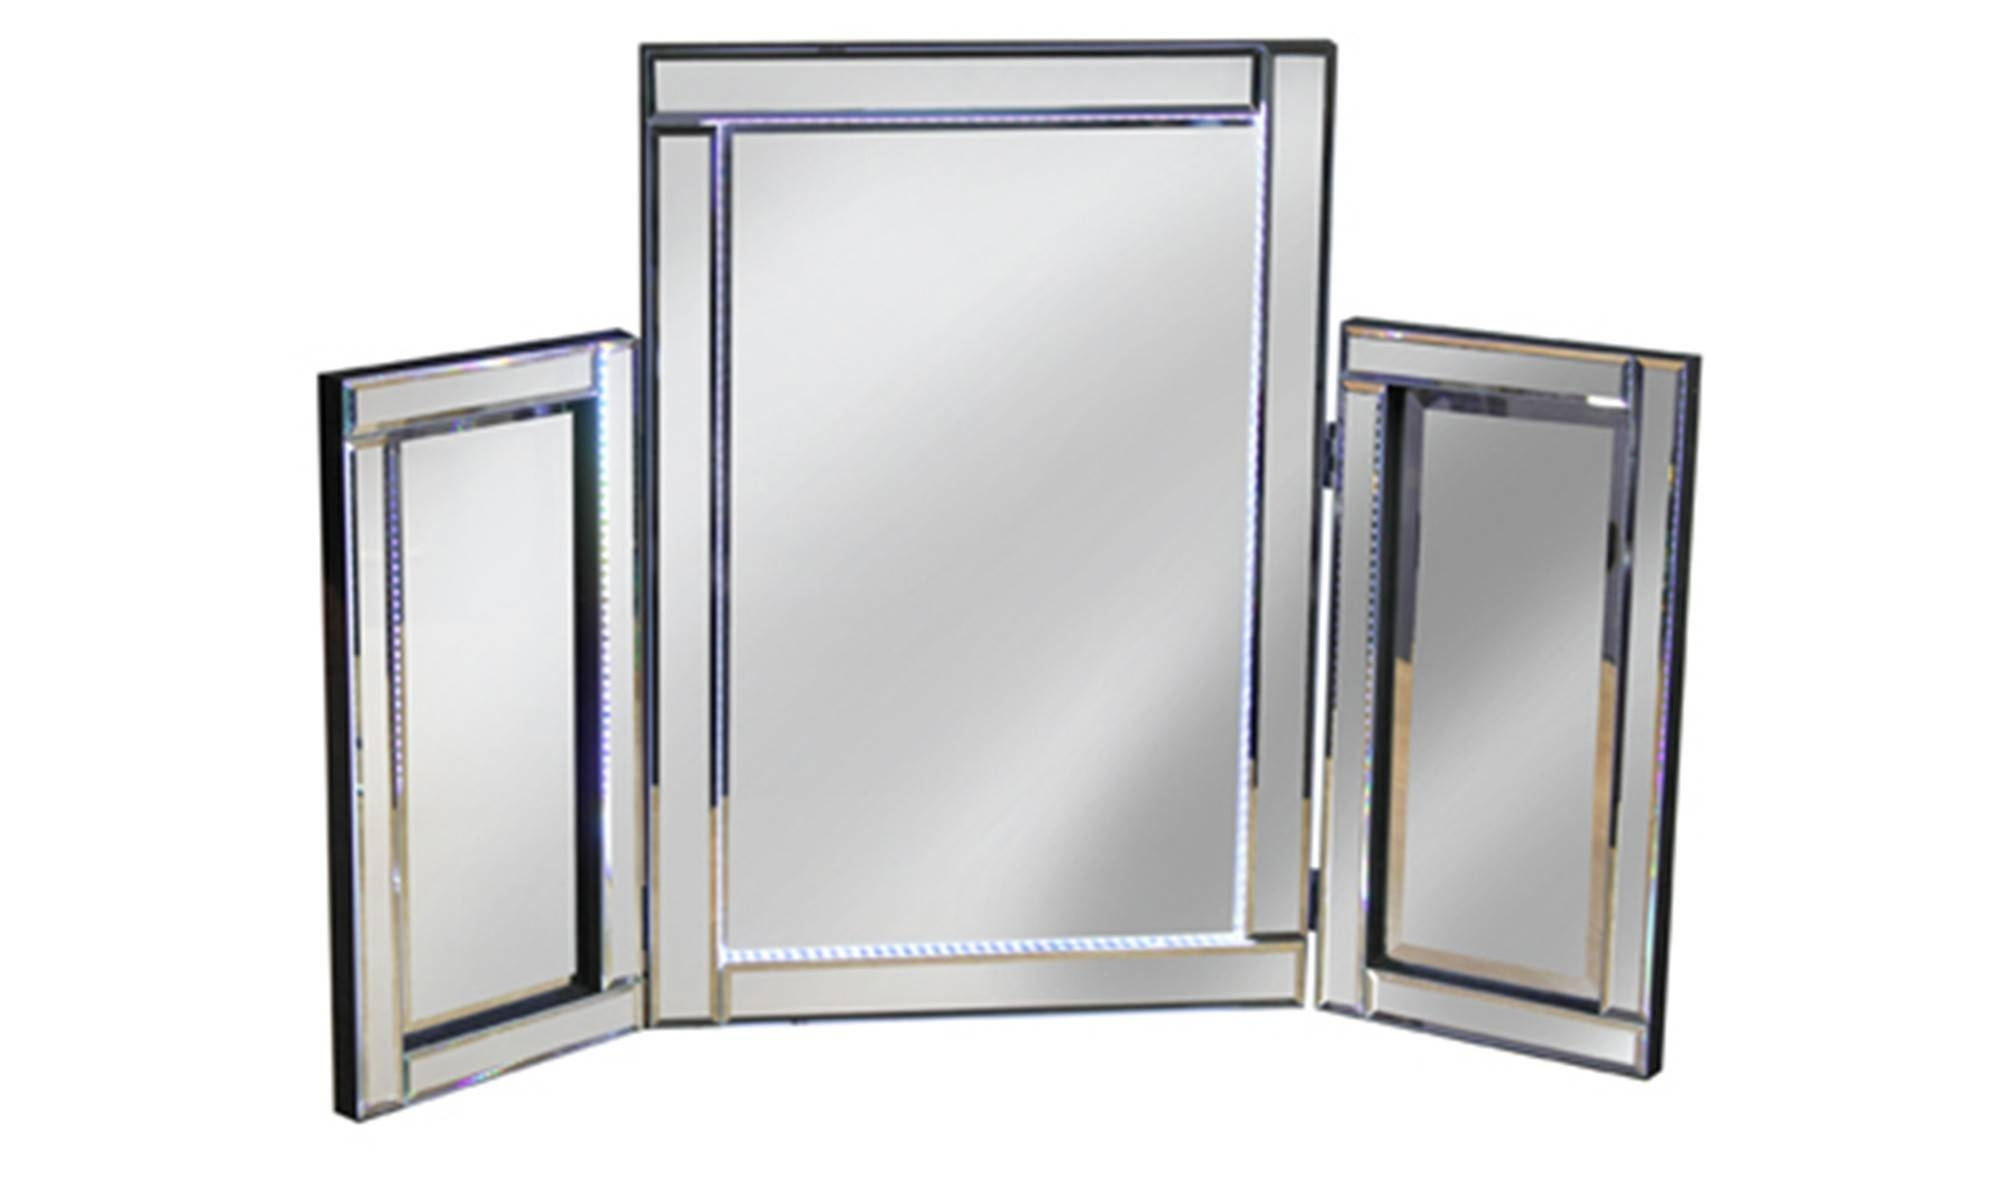 Dressing Table Mirrors & Vanity Mirrors – Fishpools With Regard To Silver Dressing Table Mirrors (View 7 of 15)